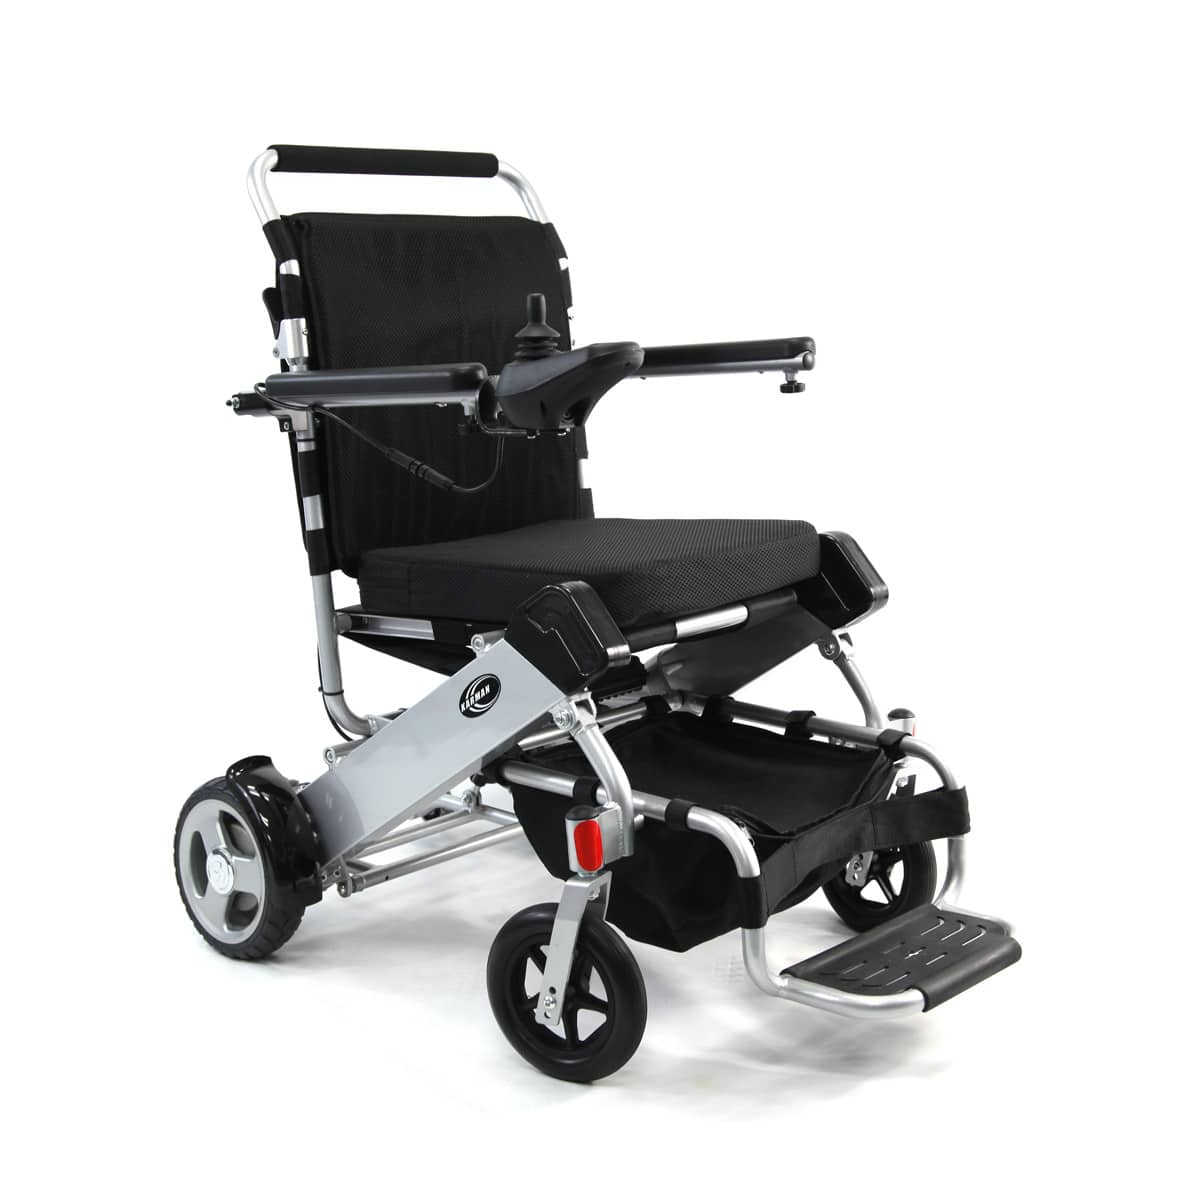 wheelchair size swing chair olx lahore karman tranzit go foldable power luggage carrier